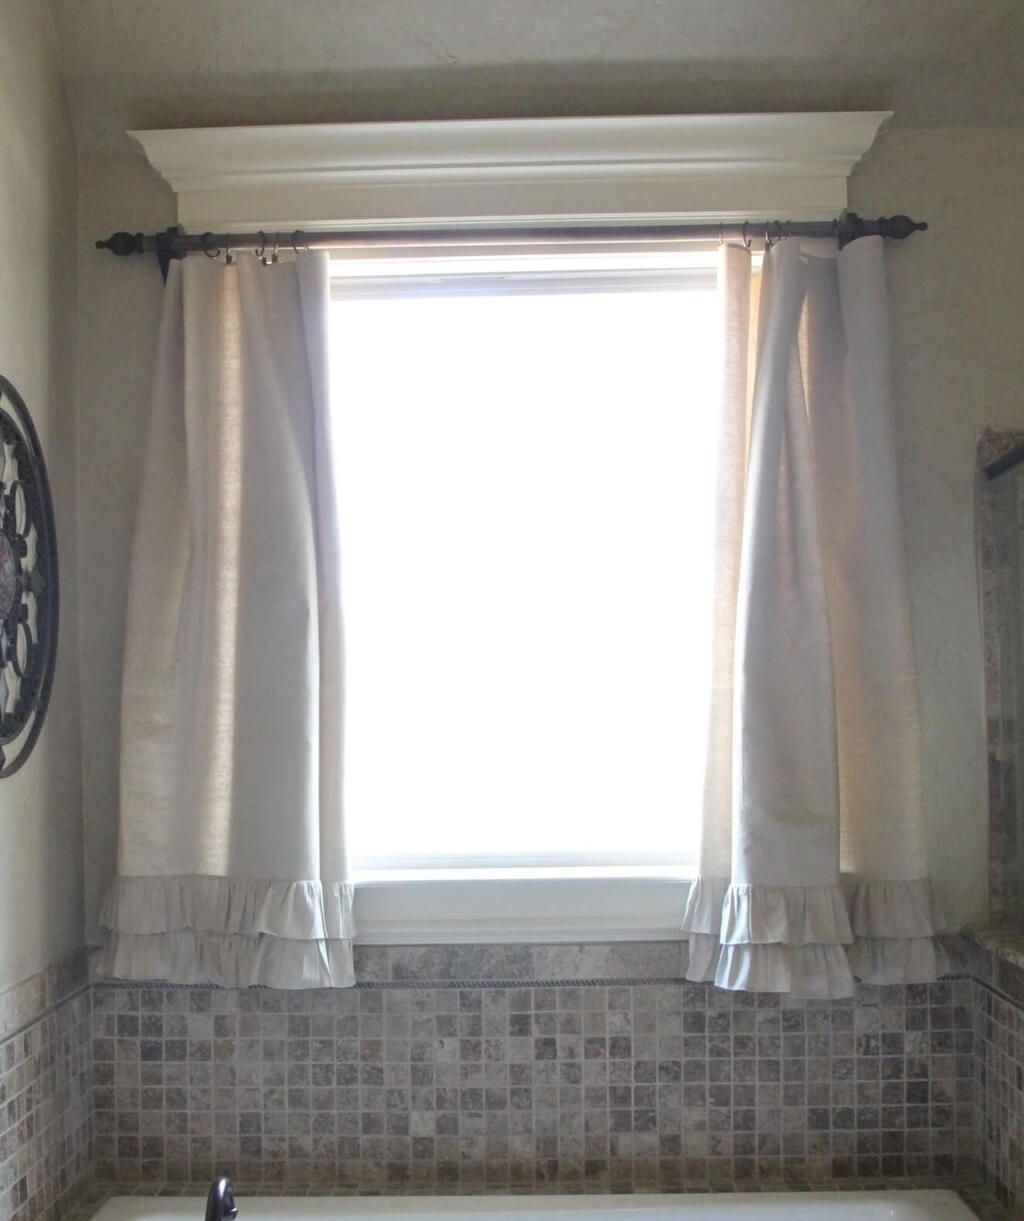 Bathroom Lace Bathroom Window Curtain Photo Tricks In Intended For Curtains For Bathrooms Windows (Image 2 of 15)